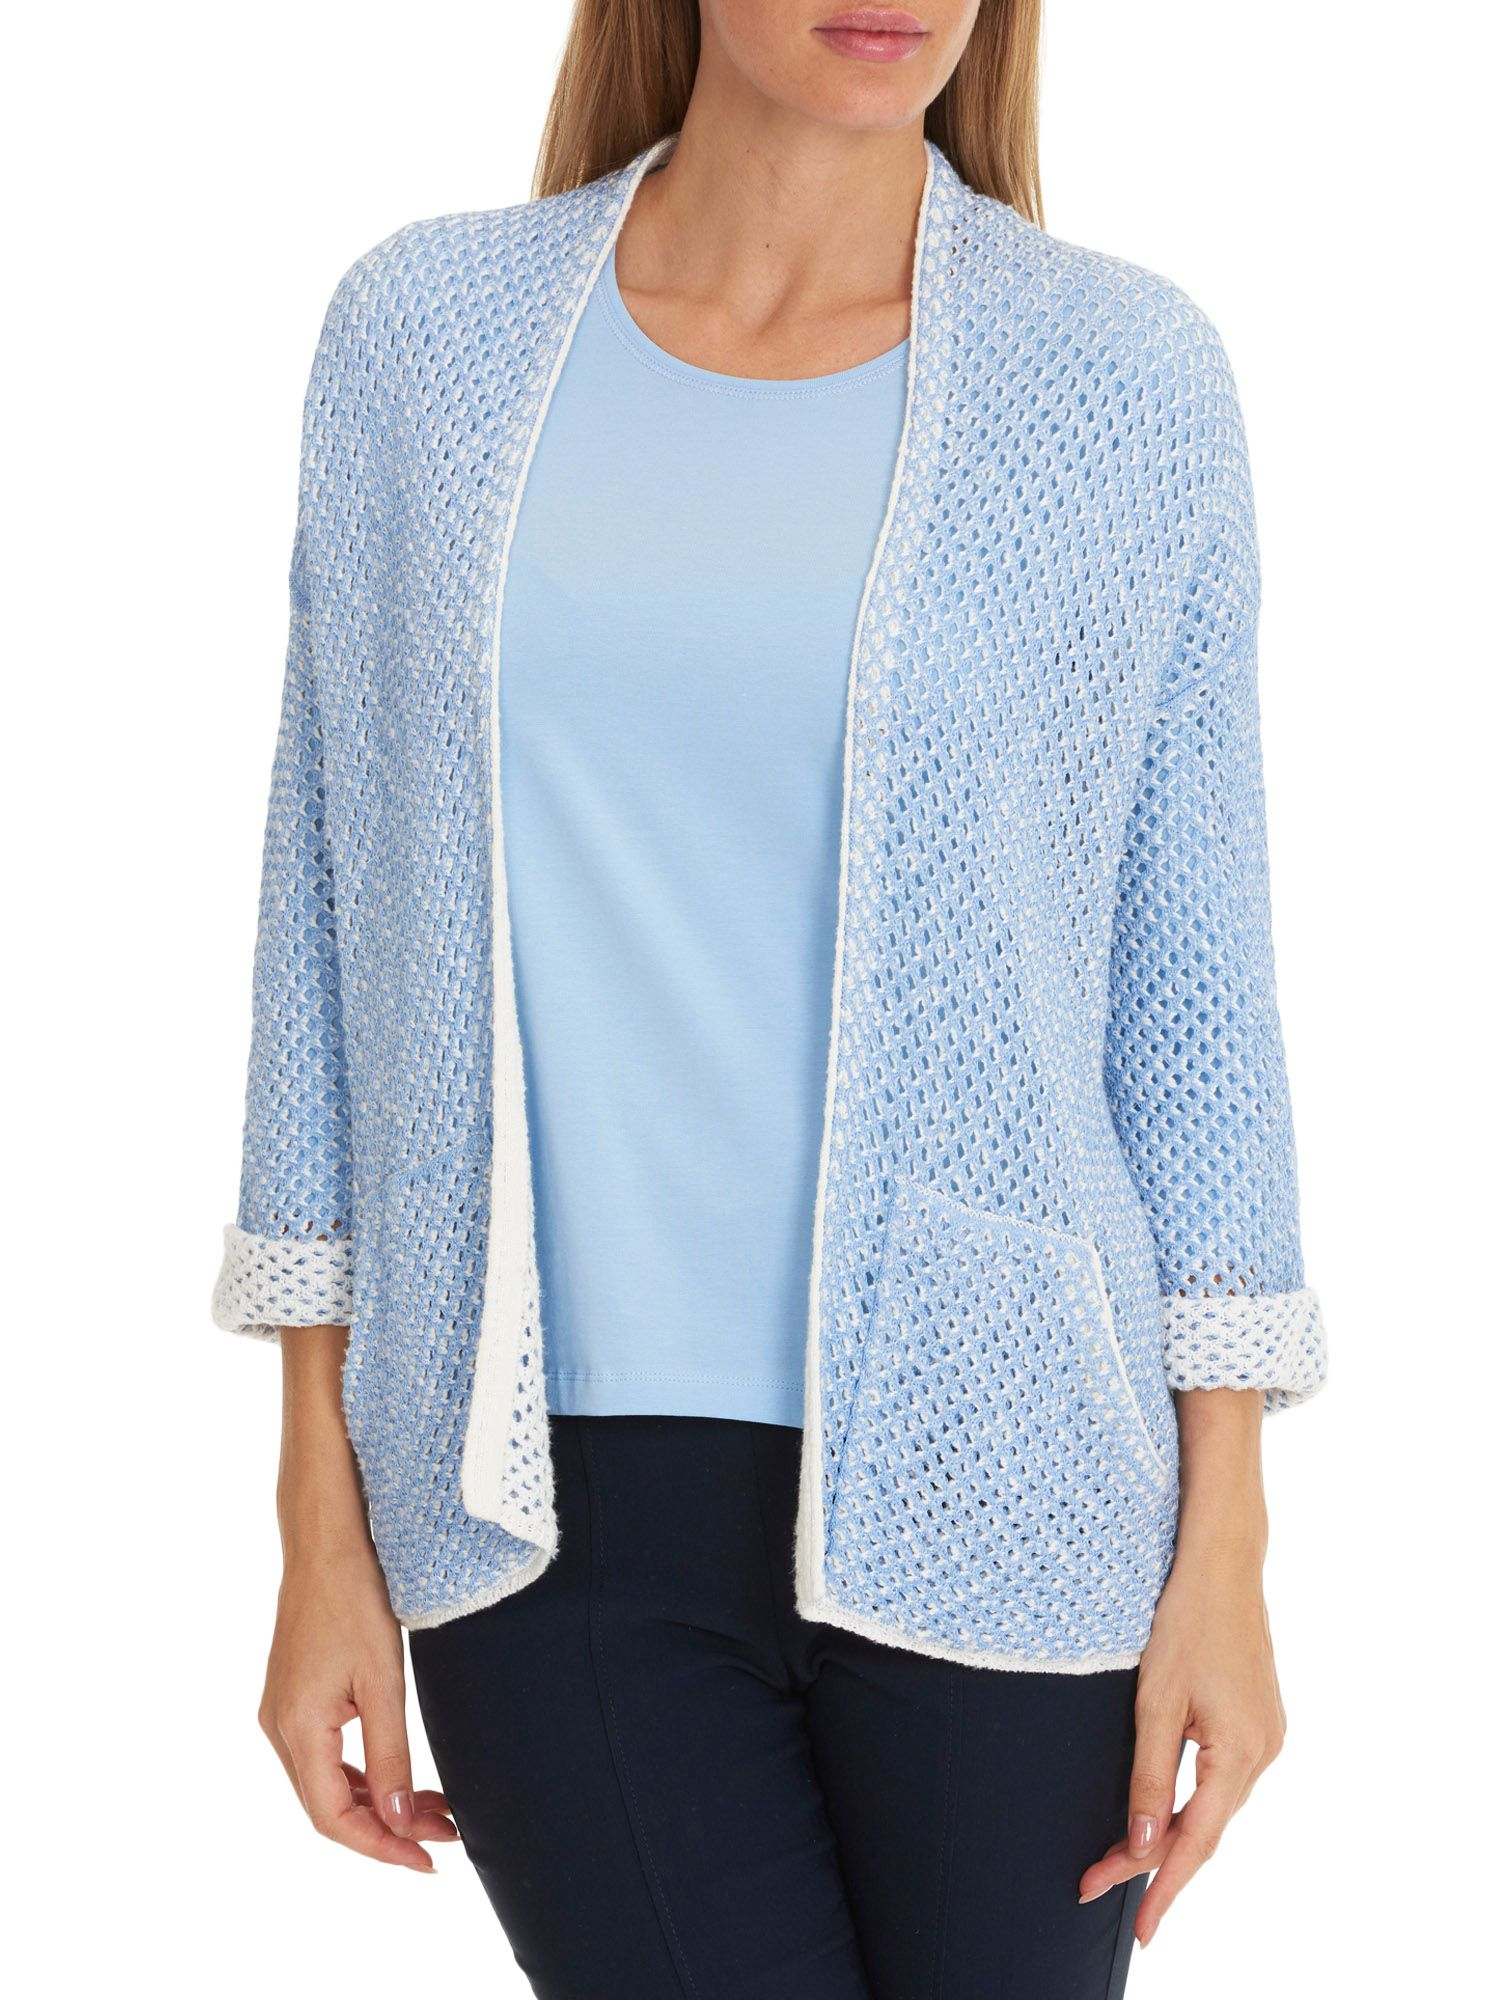 Knitting Pattern For Edge To Edge Cardigan : Betty barclay Open Knit Edge-to-edge Cardigan in Blue Lyst